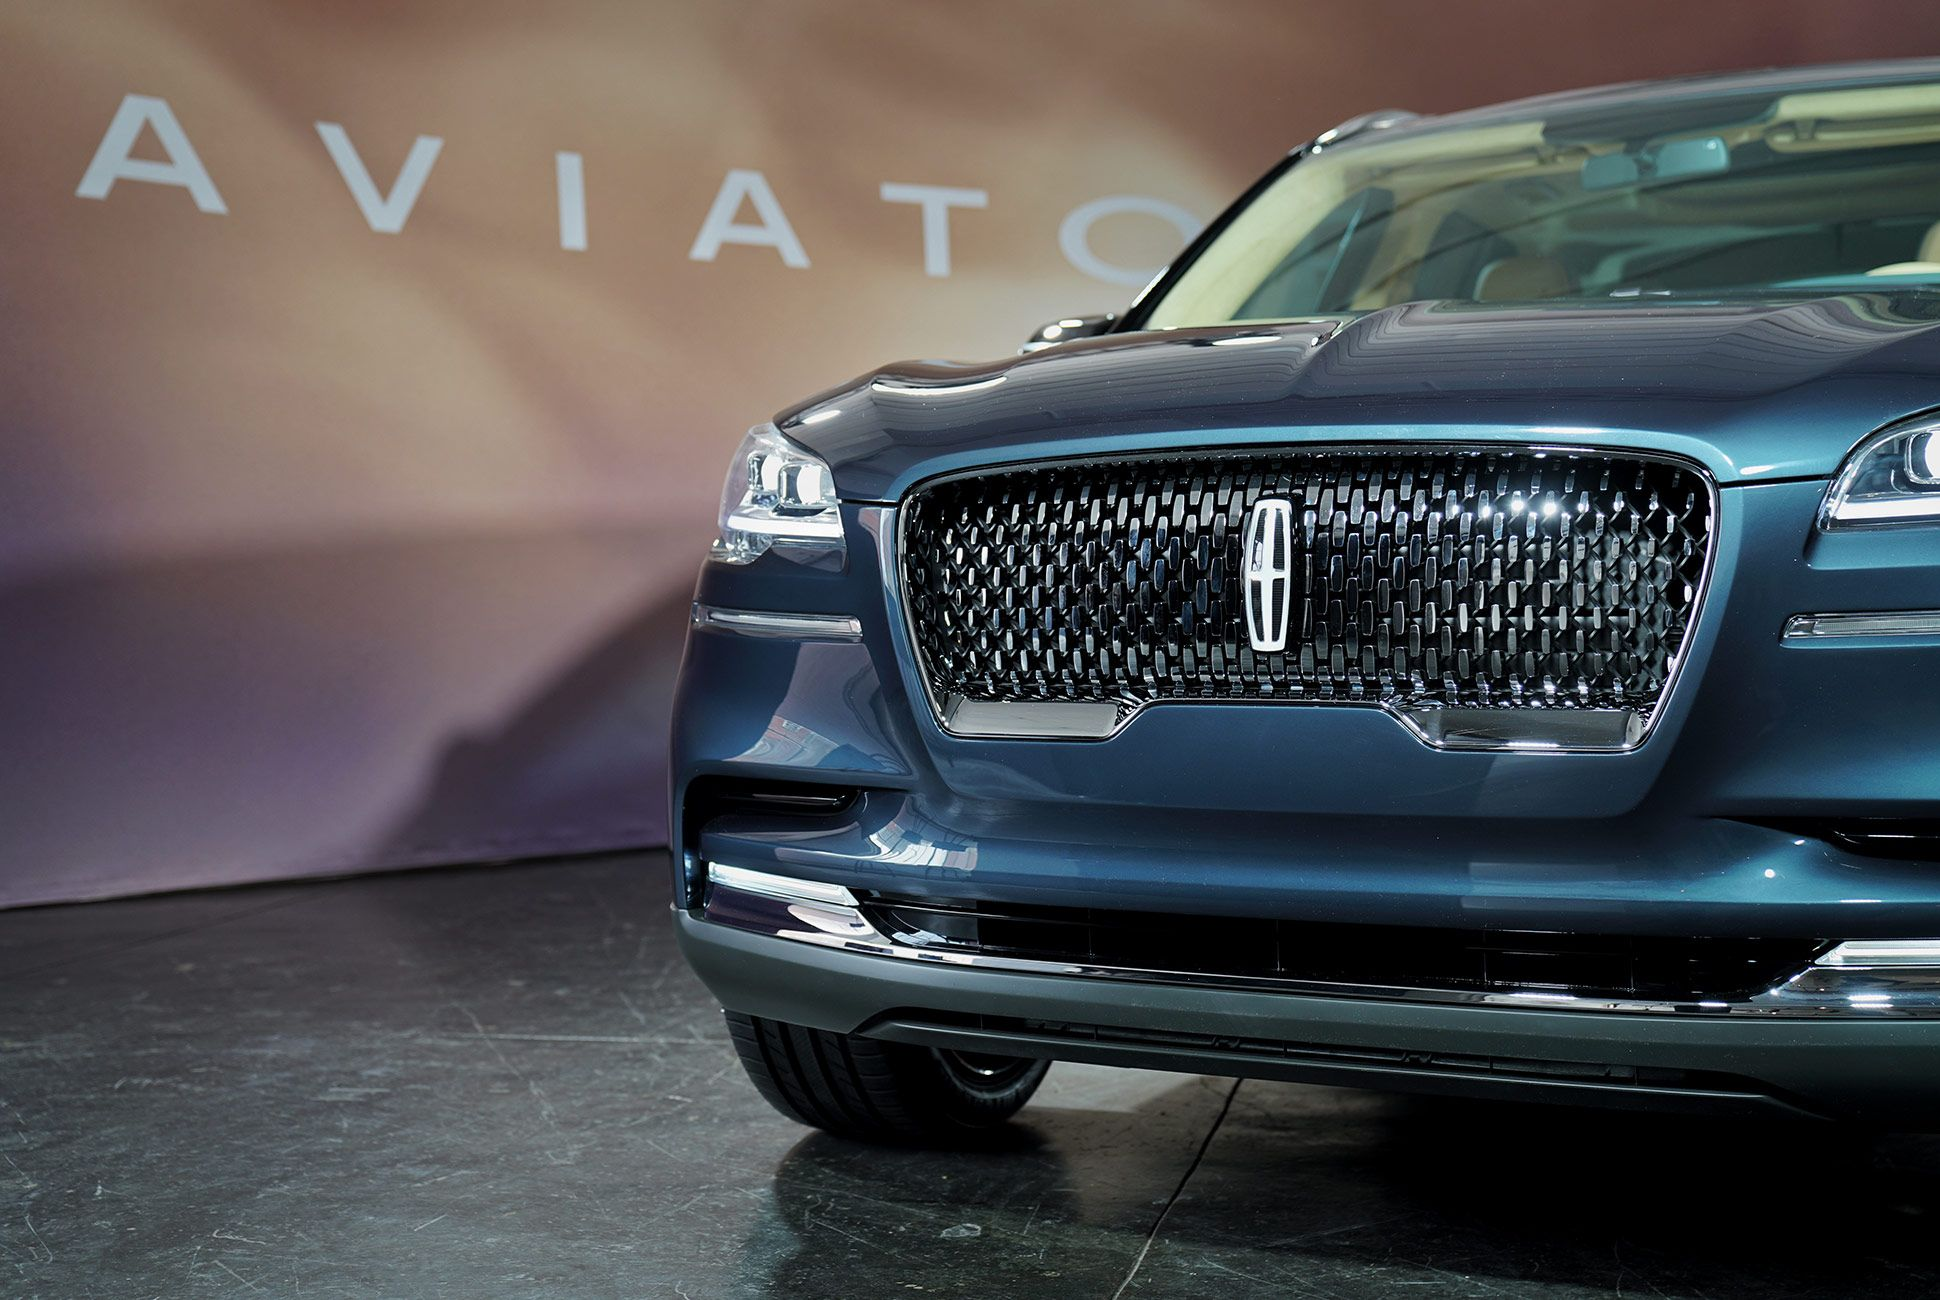 2019-Lincoln-Aviator-Preview-gear-patrol-slide-2